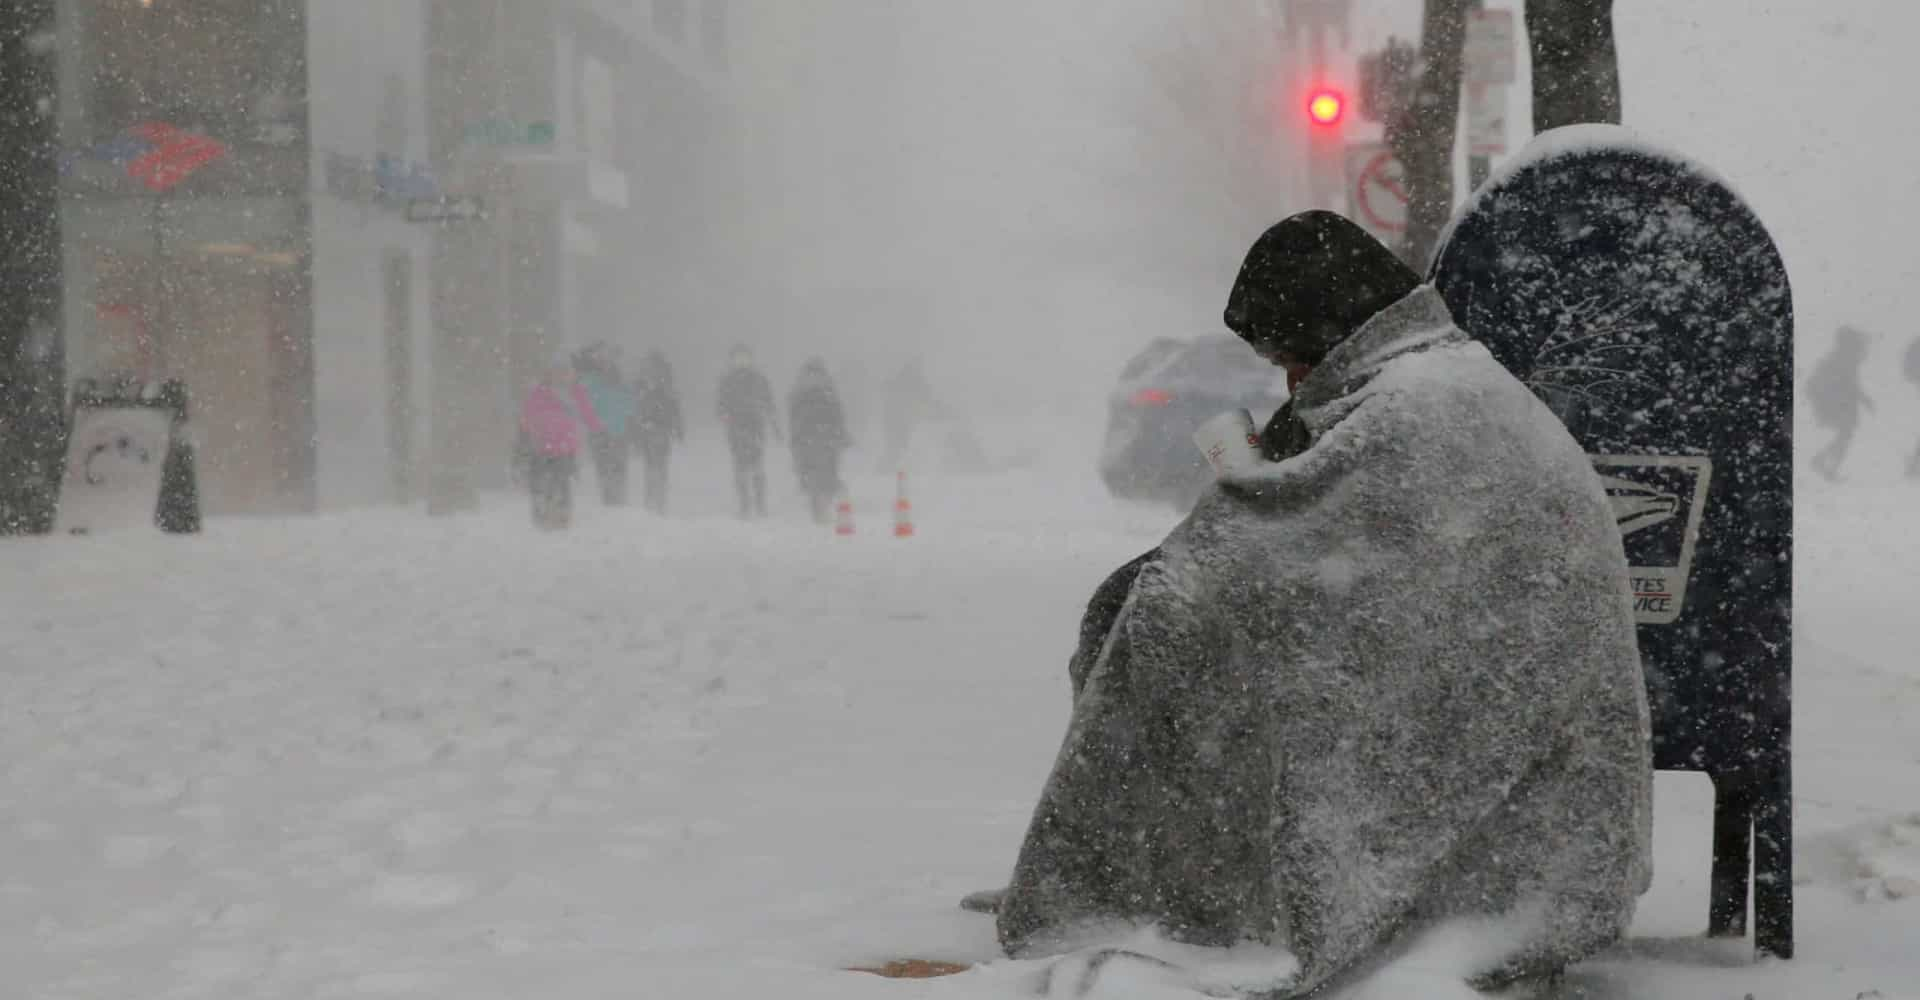 The most catastrophic blizzards in history